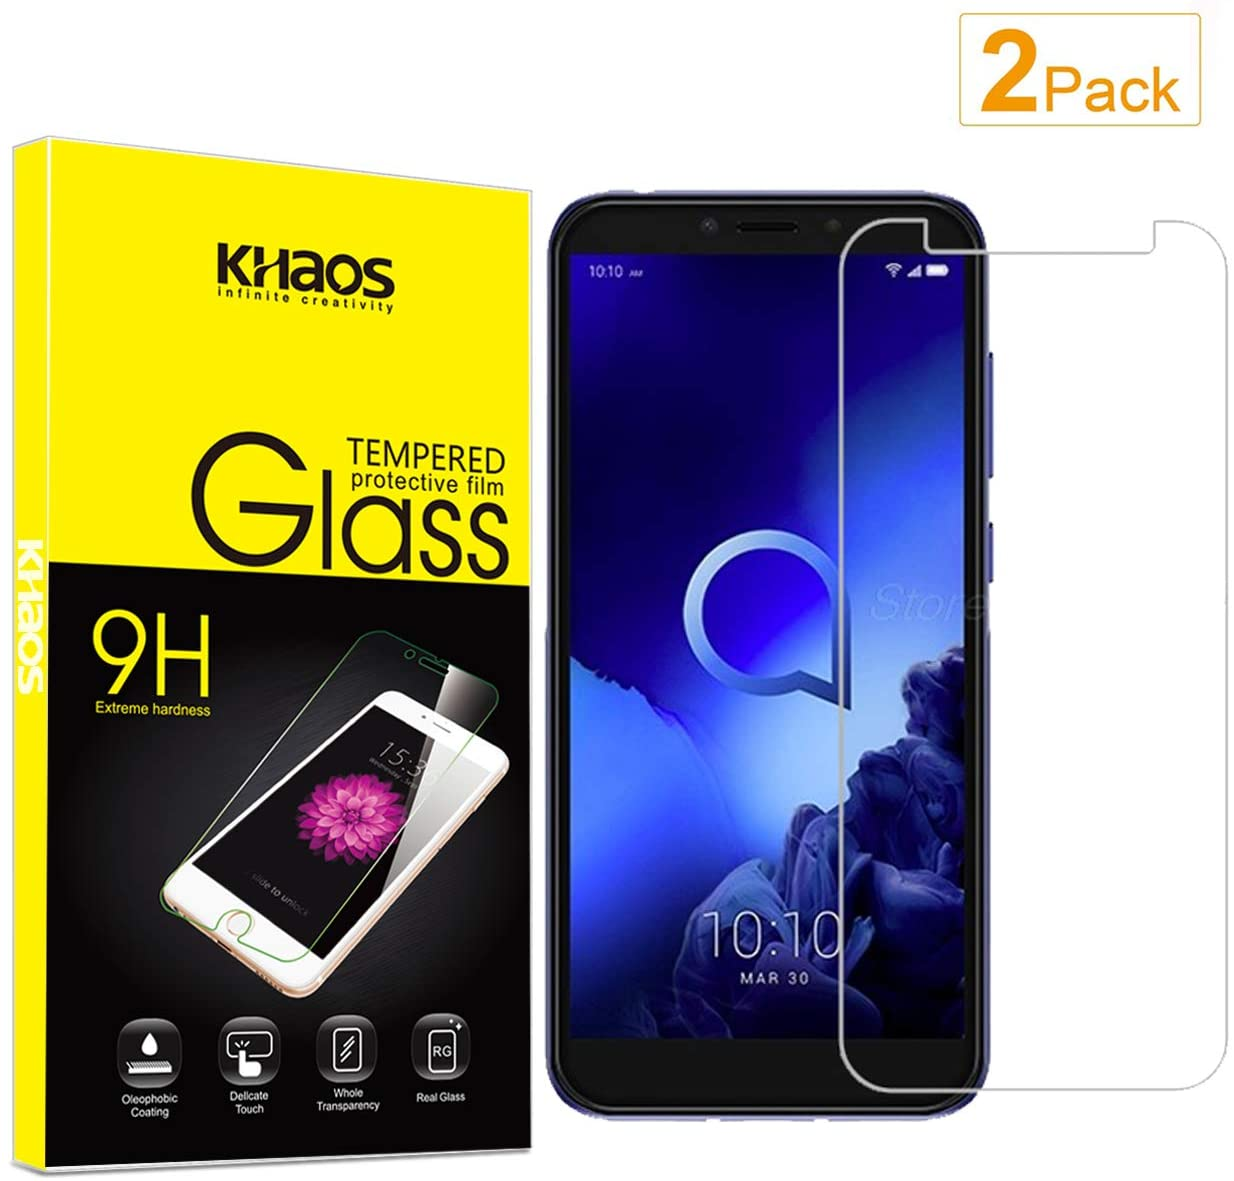 [2 Pack] Khaos for Alcatel 1S 5024D 2019 Tempered Glass Screen Protector, Scratch Resistant, Bubble Free